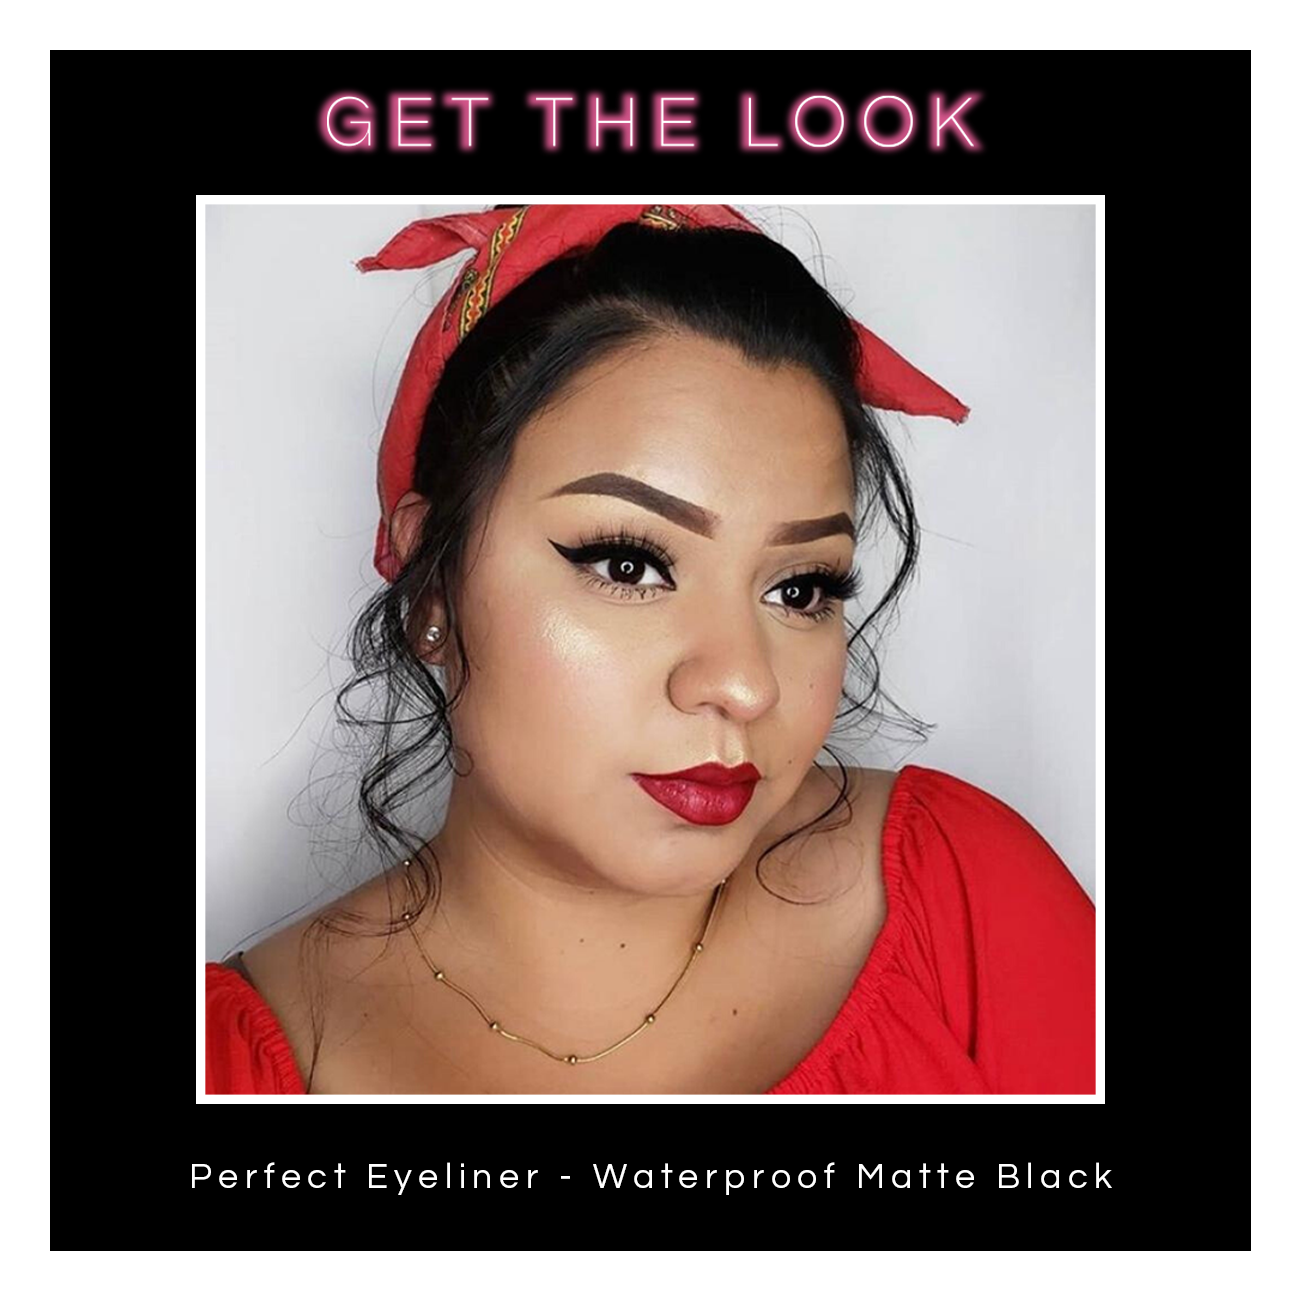 Perfect Eyeliner - Waterproof Matte Black